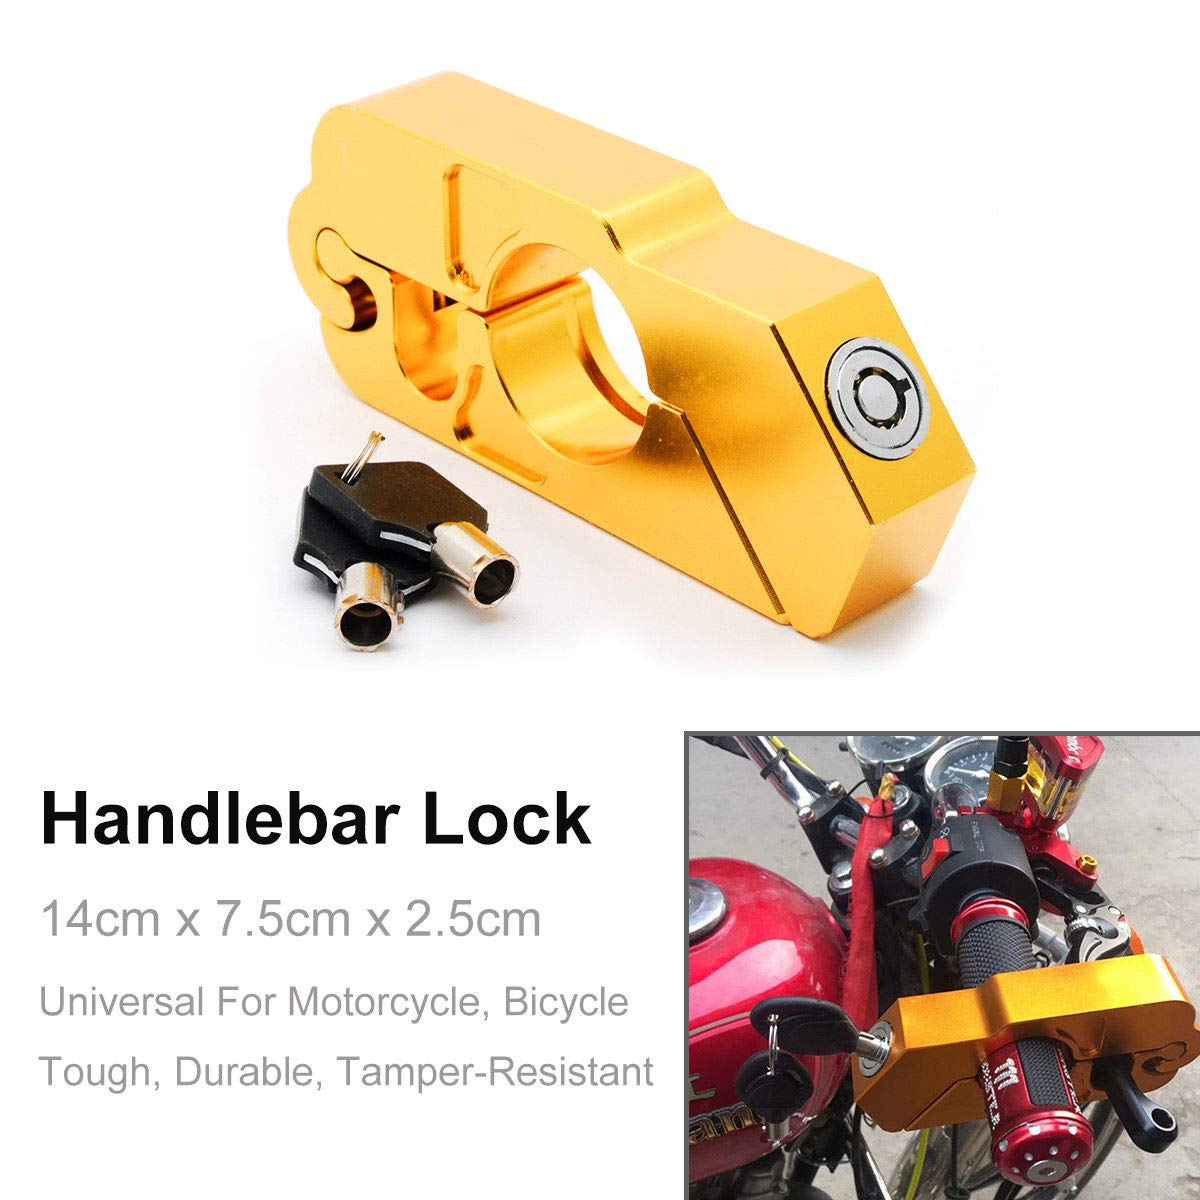 MASO Motorbike Motorcycle Handlebar Throttle Grip Lock Aluminum Alloy Anti-theft Brake Level Lock for Bike Scooter Moped ATV Motorcycle Handlebar Lock Gold